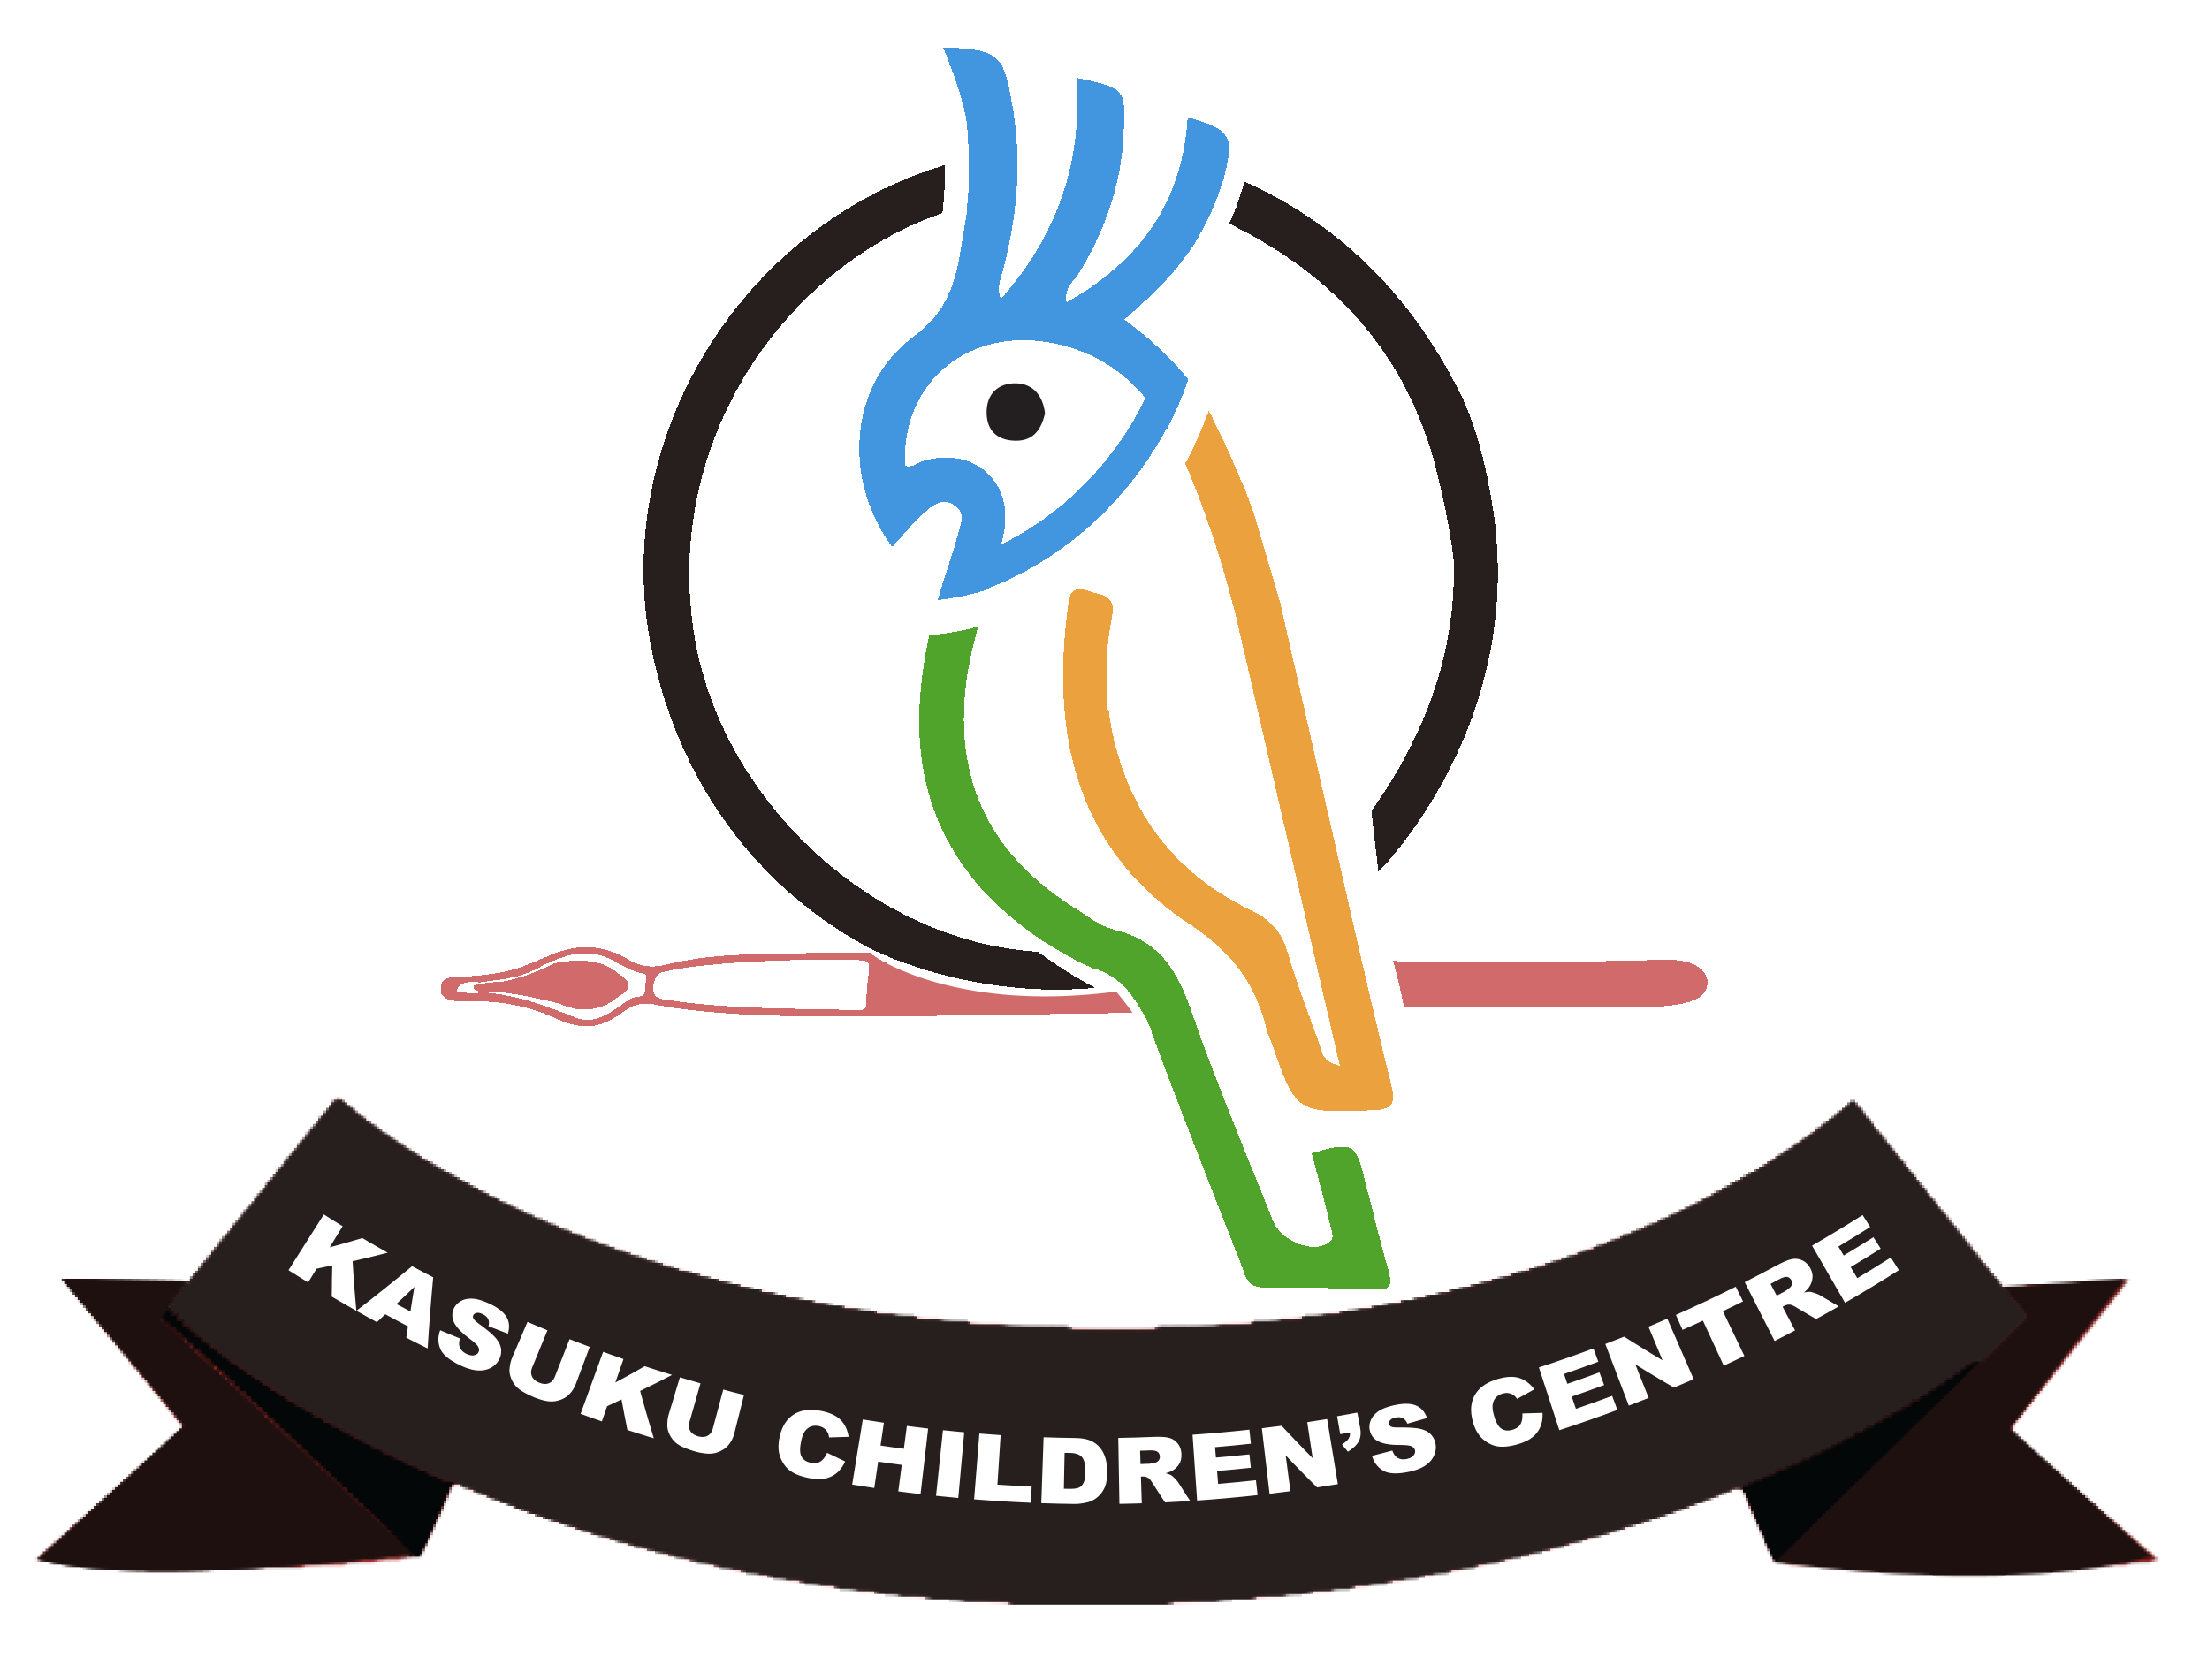 Kasuku Children's Centre